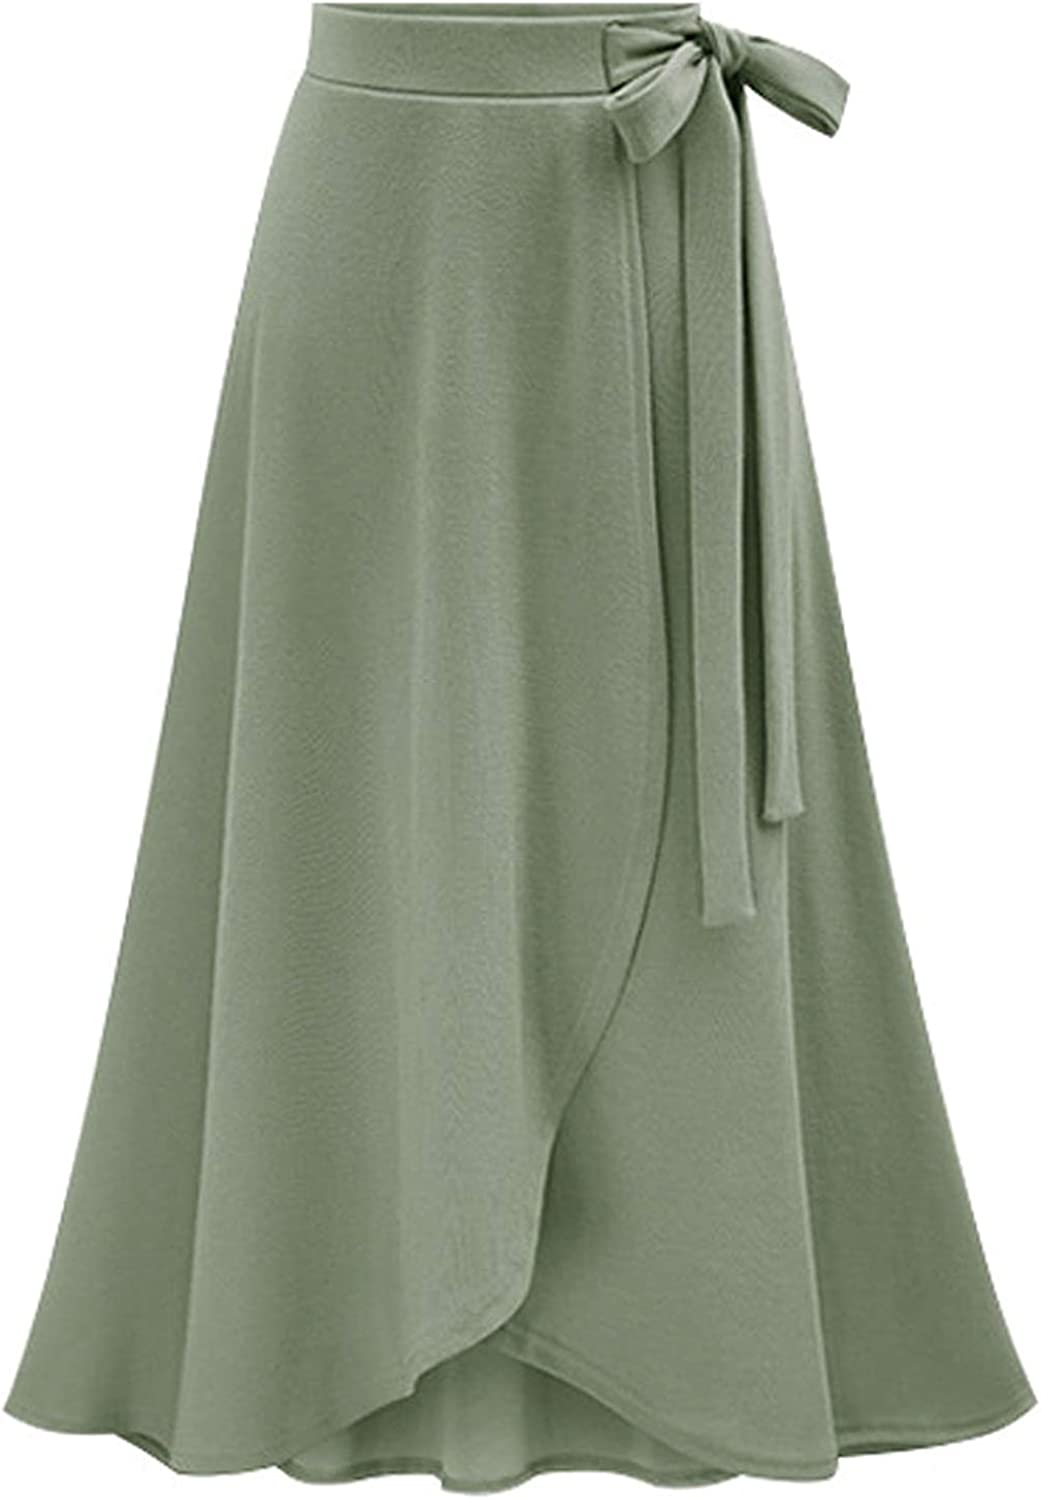 chouyatou Women's Lovely Bow-Knot Waist Stretched Flare Tulip Jersey Long Skirts